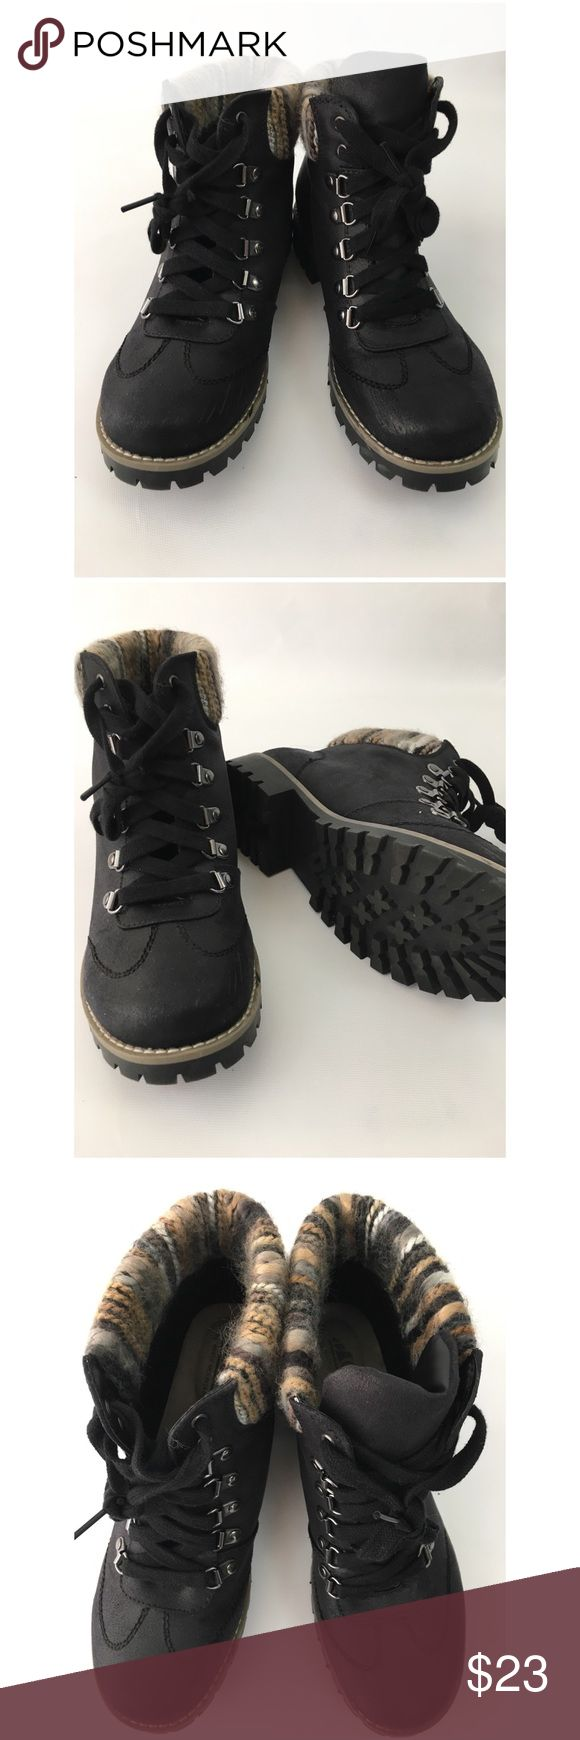 Cliffs White Mountain Ankle Boots Ladies 9.5 Great little black ankle boots for winter. Cliffs by White Mountain in Ladies 9.5 med White Mountain Shoes Ankle Boots & Booties